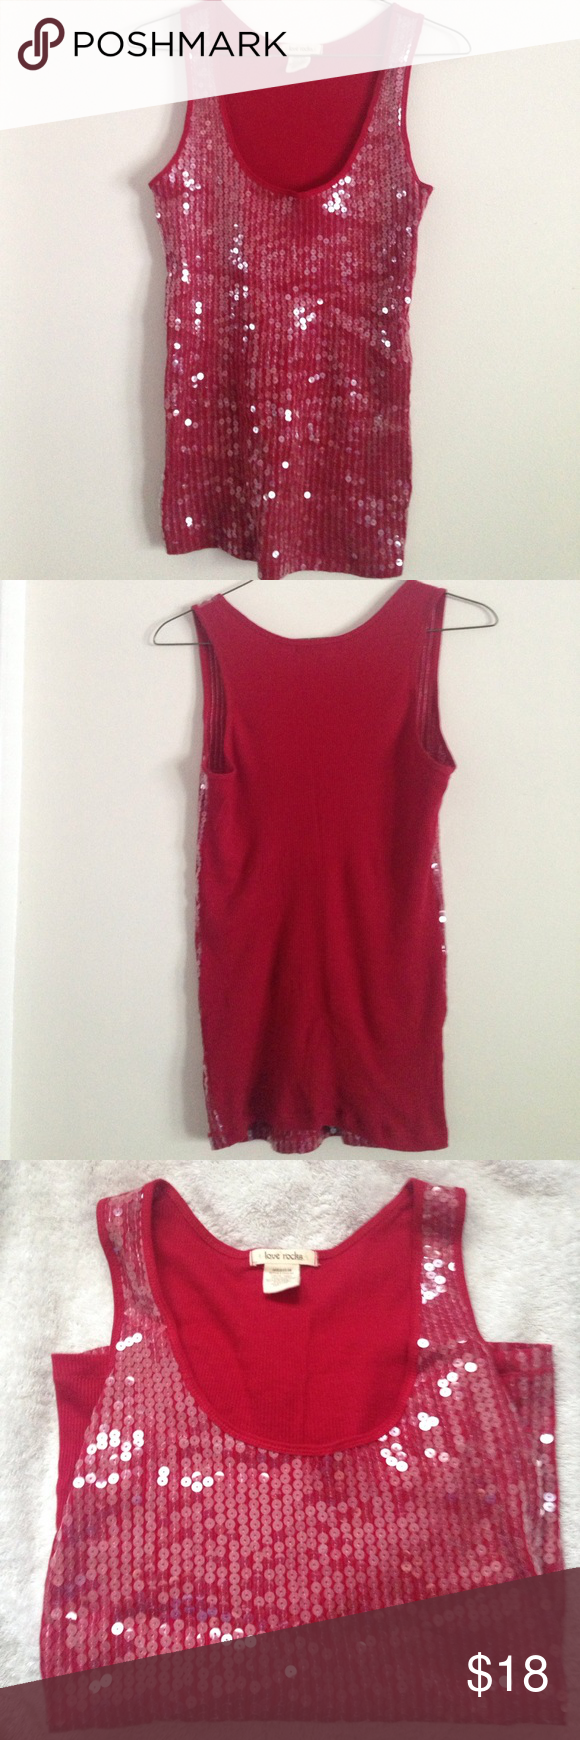 NWOT Red Sequin Tank Top, Slim Fit, Size M 🎉10% off Bundles of 2 or More!🎉 NWOT fierce red sequined tank top by Love Rocks, size Medium. Perfect condition, never worn, has been in a plastic box in storage. Tank is ribbed knit cotton, with a slim flattering fit, and ultra-shiny sequins are sewn into the fabric on front. Rock this at your next concert or in the club and stand out from the crowd! Tops Tank Tops